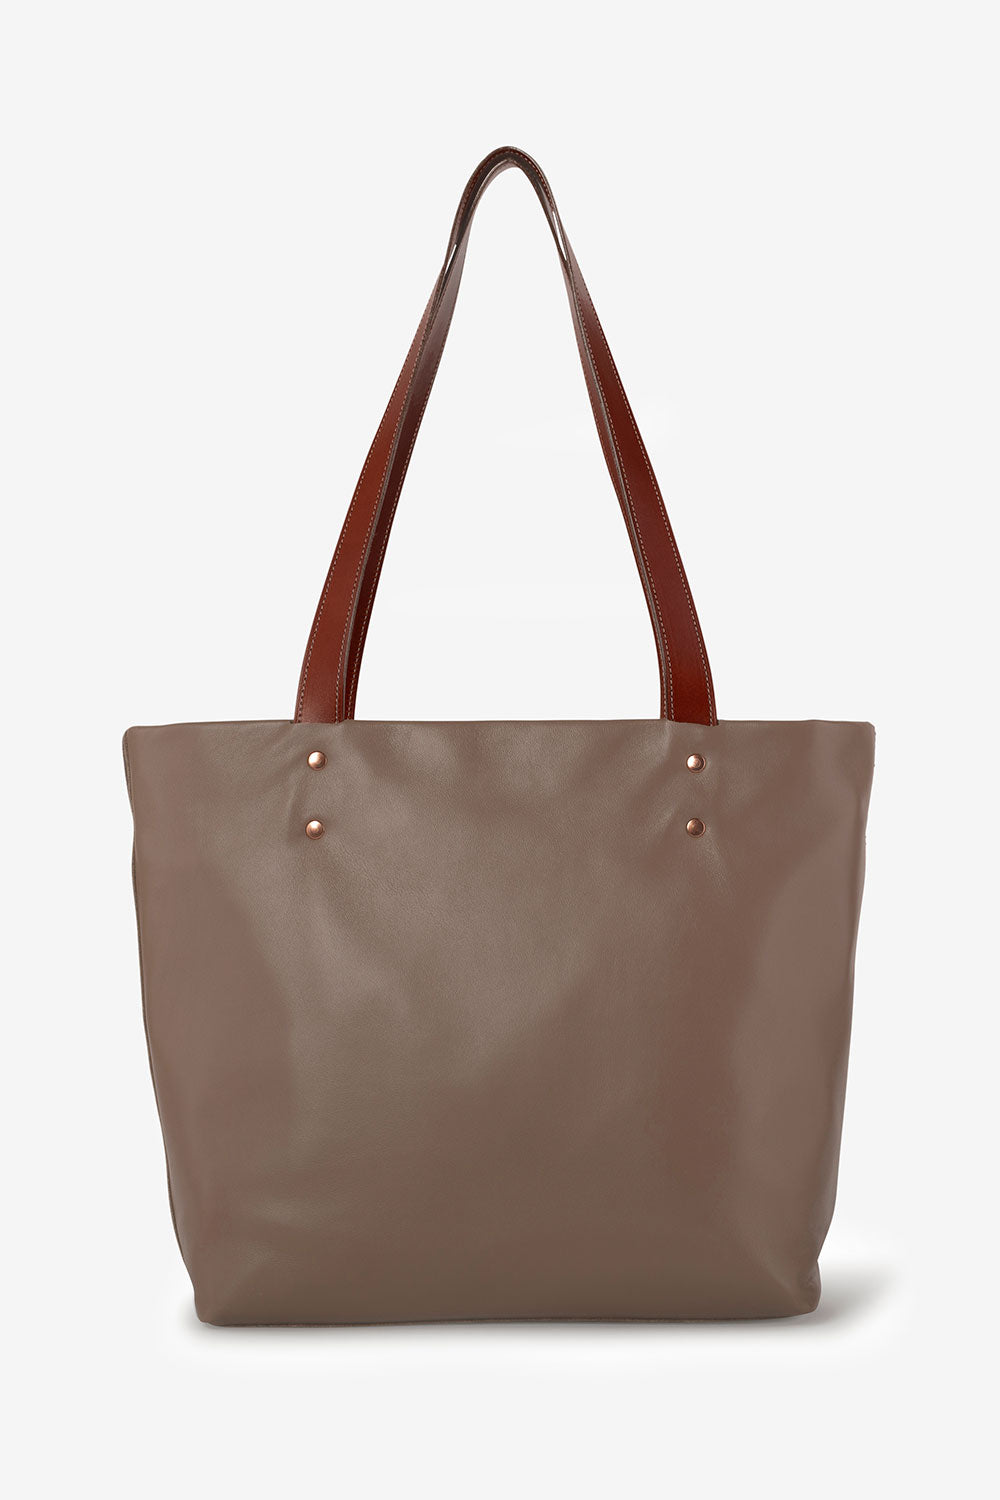 Alabama Chanin Heath Sews Leather Totes Handmade Leather Tote with Straps in Brown